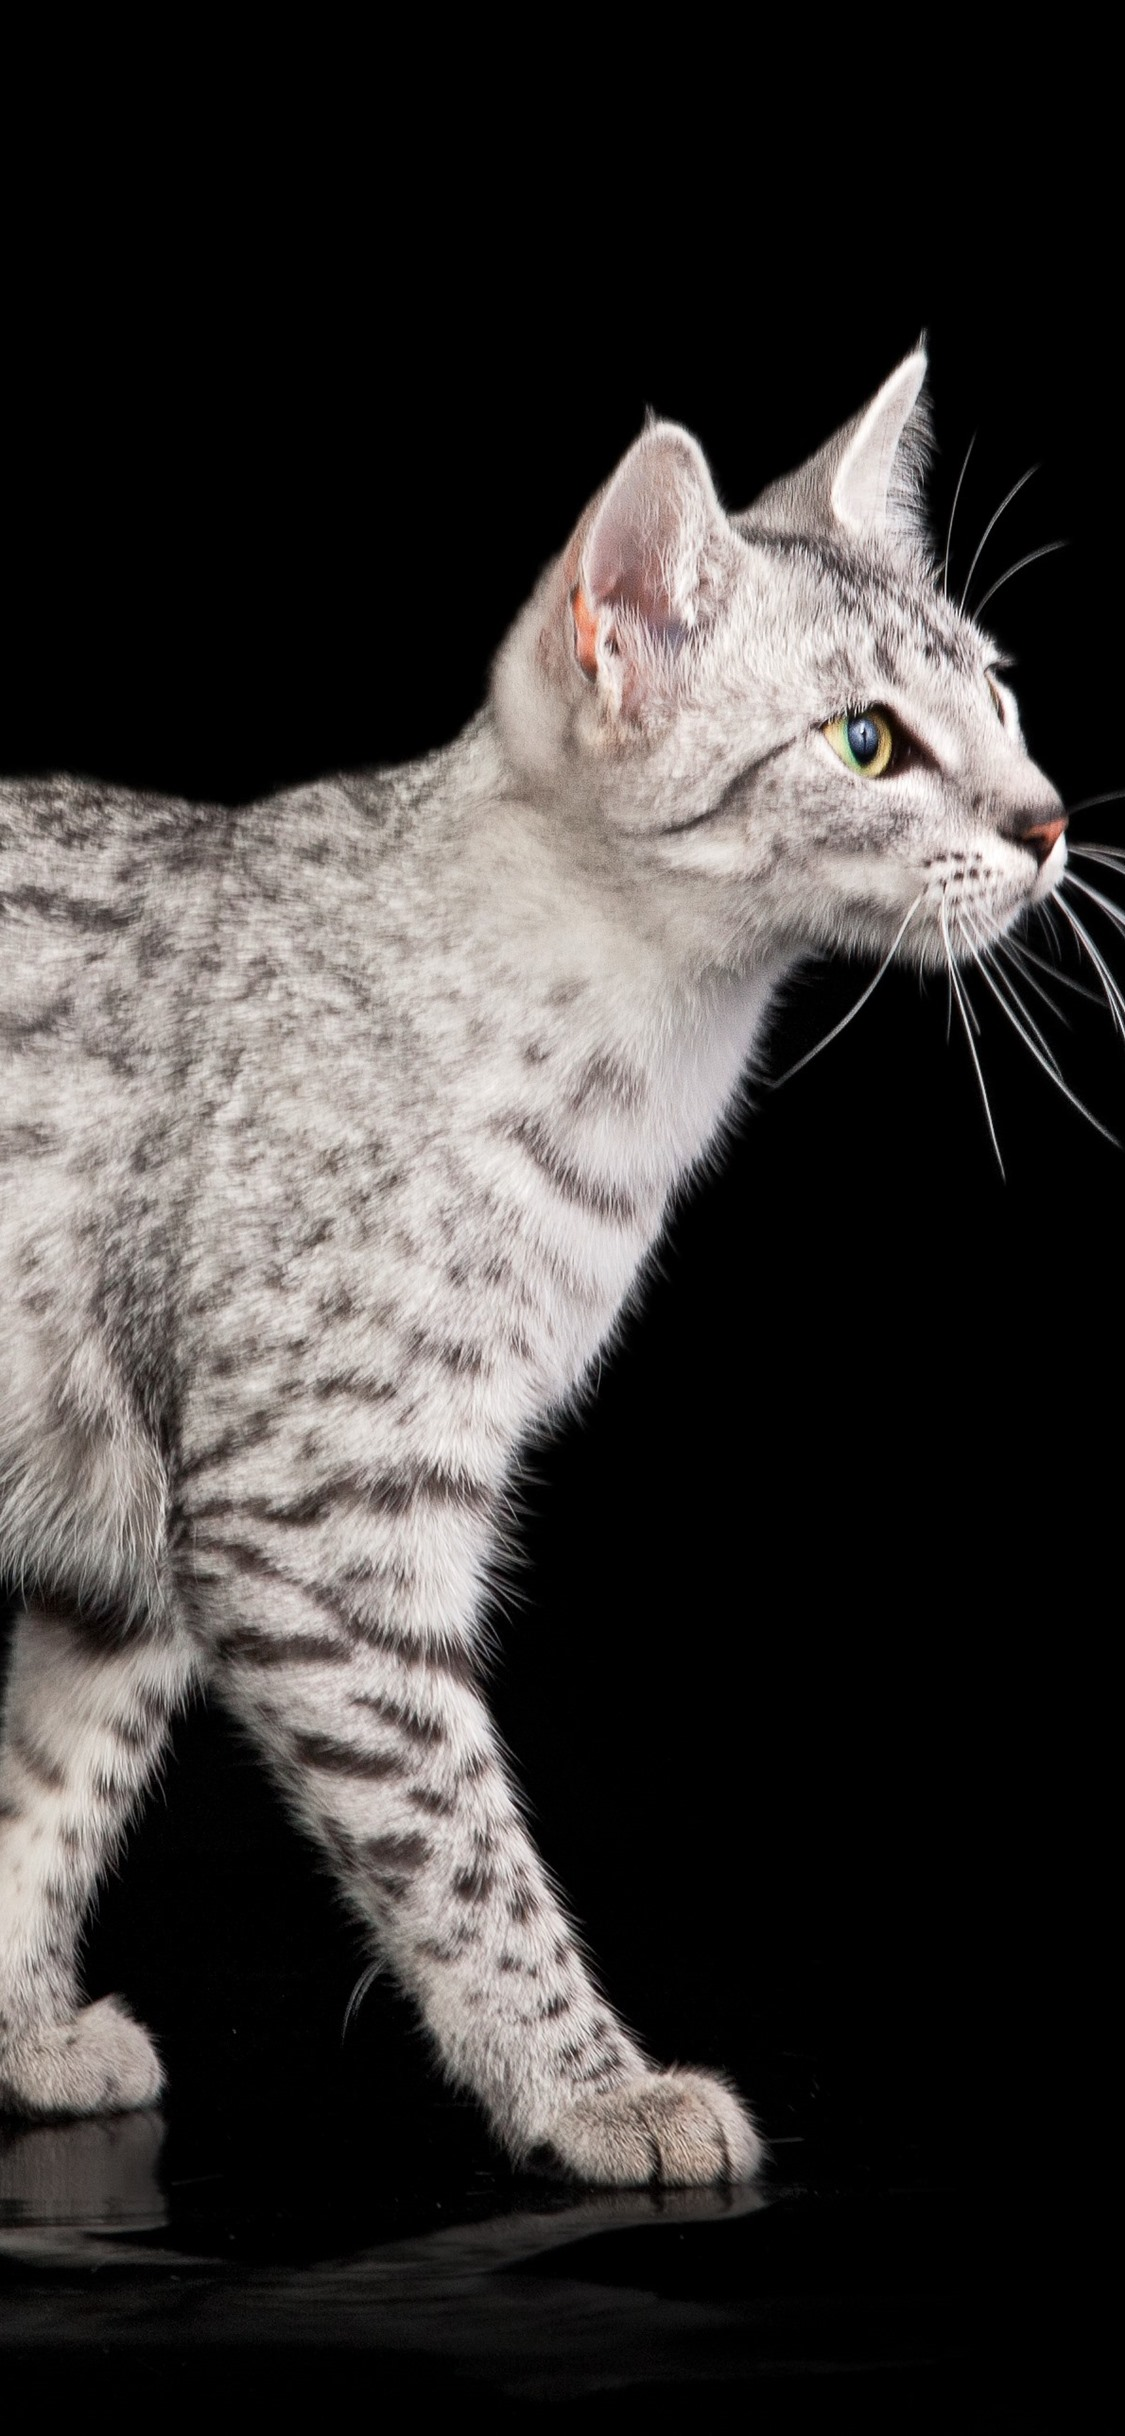 Cat Spot Black Background 1125x2436 Iphone 11 Pro Xs X Wallpaper Background Picture Image